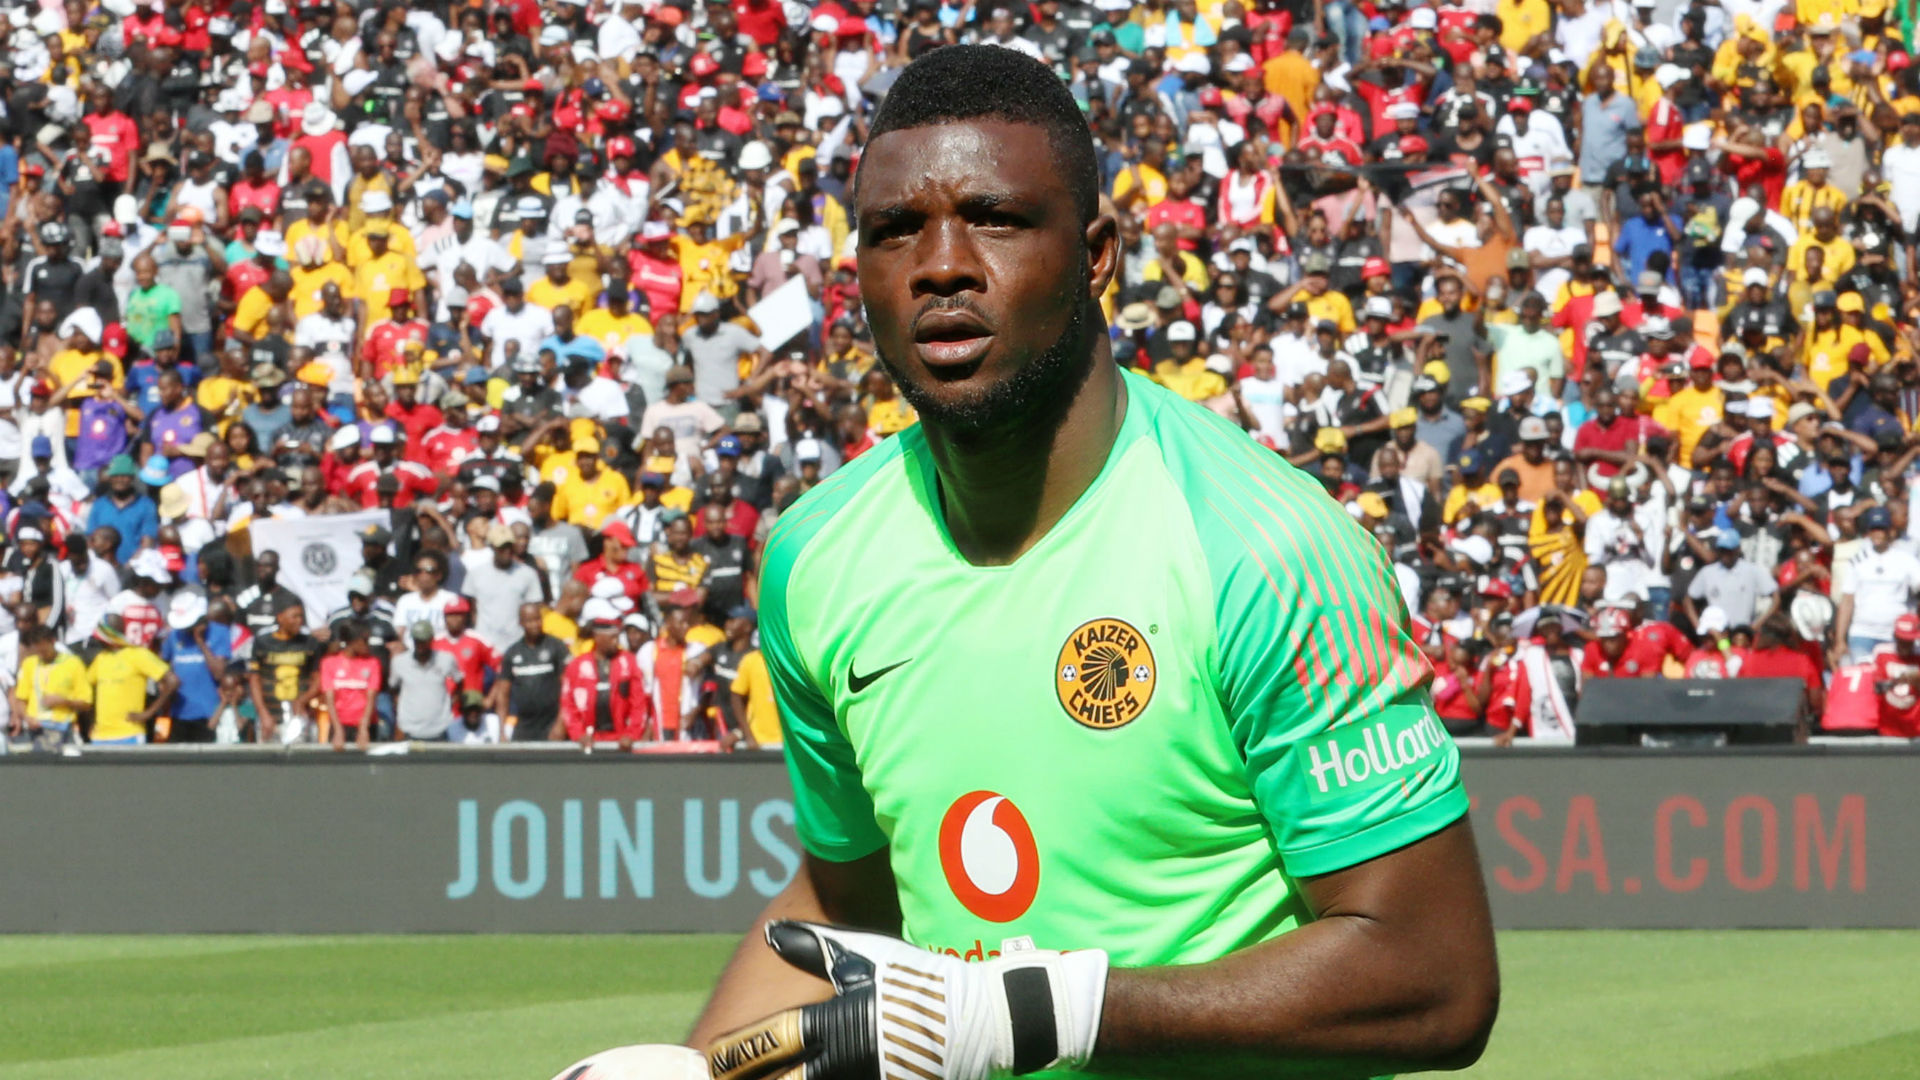 Afcon 2019: Nigeria unconcerned about Akpeyi's stats at Kaizer Chiefs - Okocha